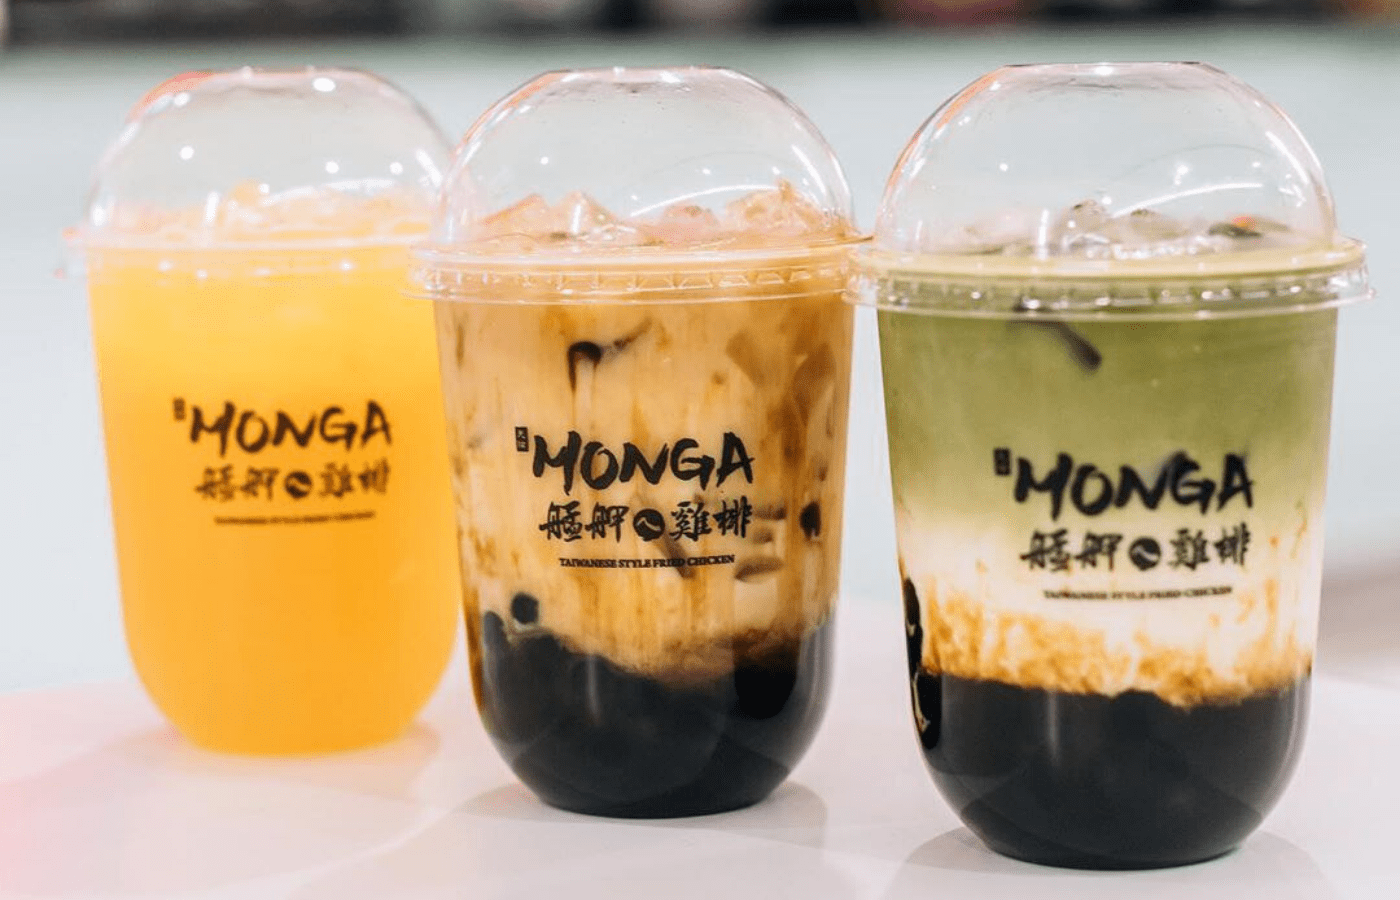 monga fried chicken | Where to get bubble tea in Singapore